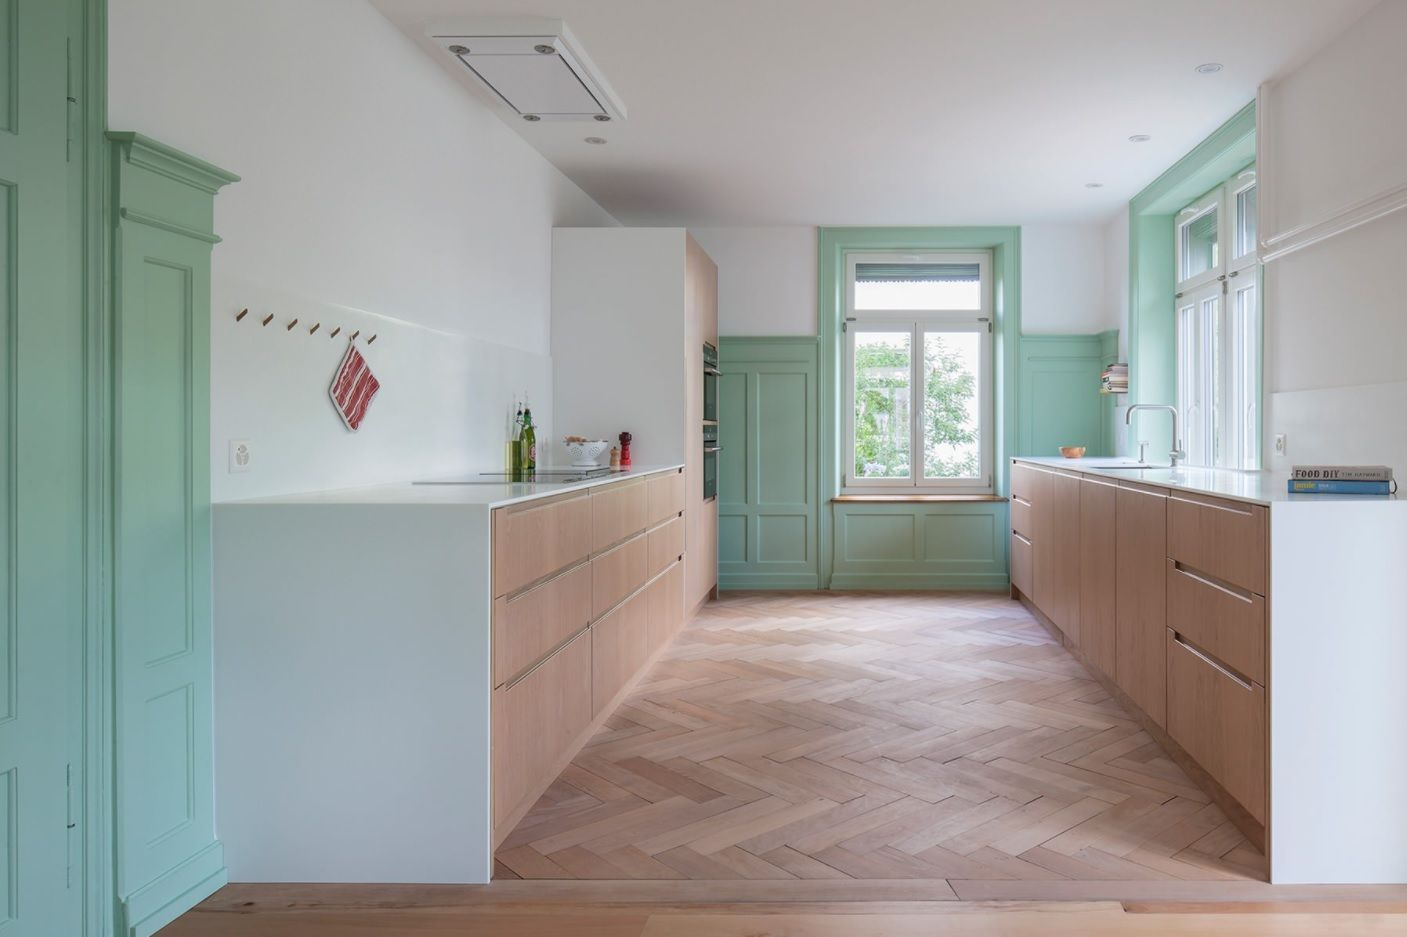 Bespoke Kitchen Interior Photos & Design Ideas. Parquet and wooden facades if the kitchen set